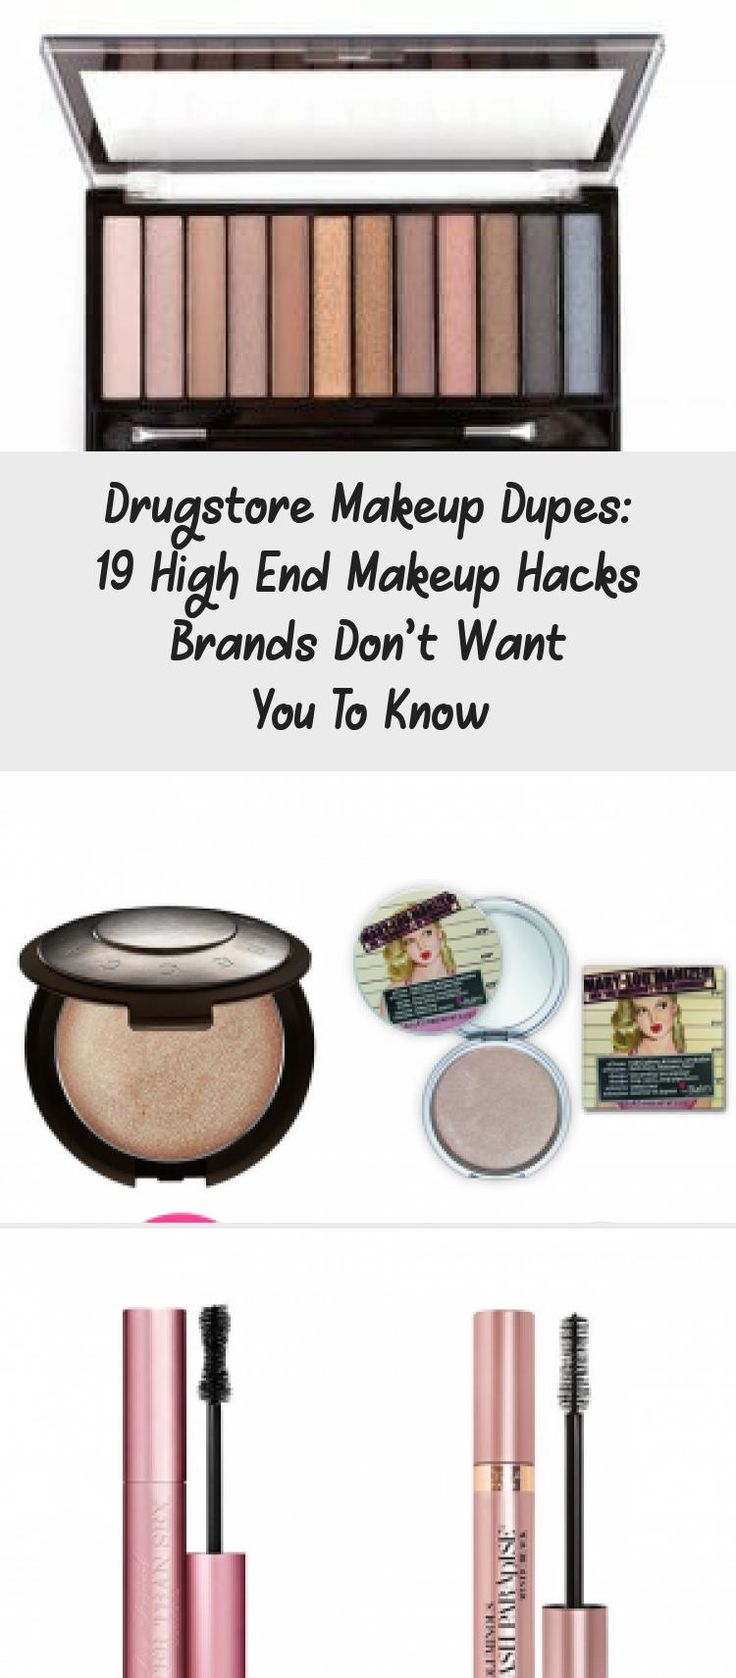 Drugstore Makeup Dupes 19 High End Makeup Hacks Brands